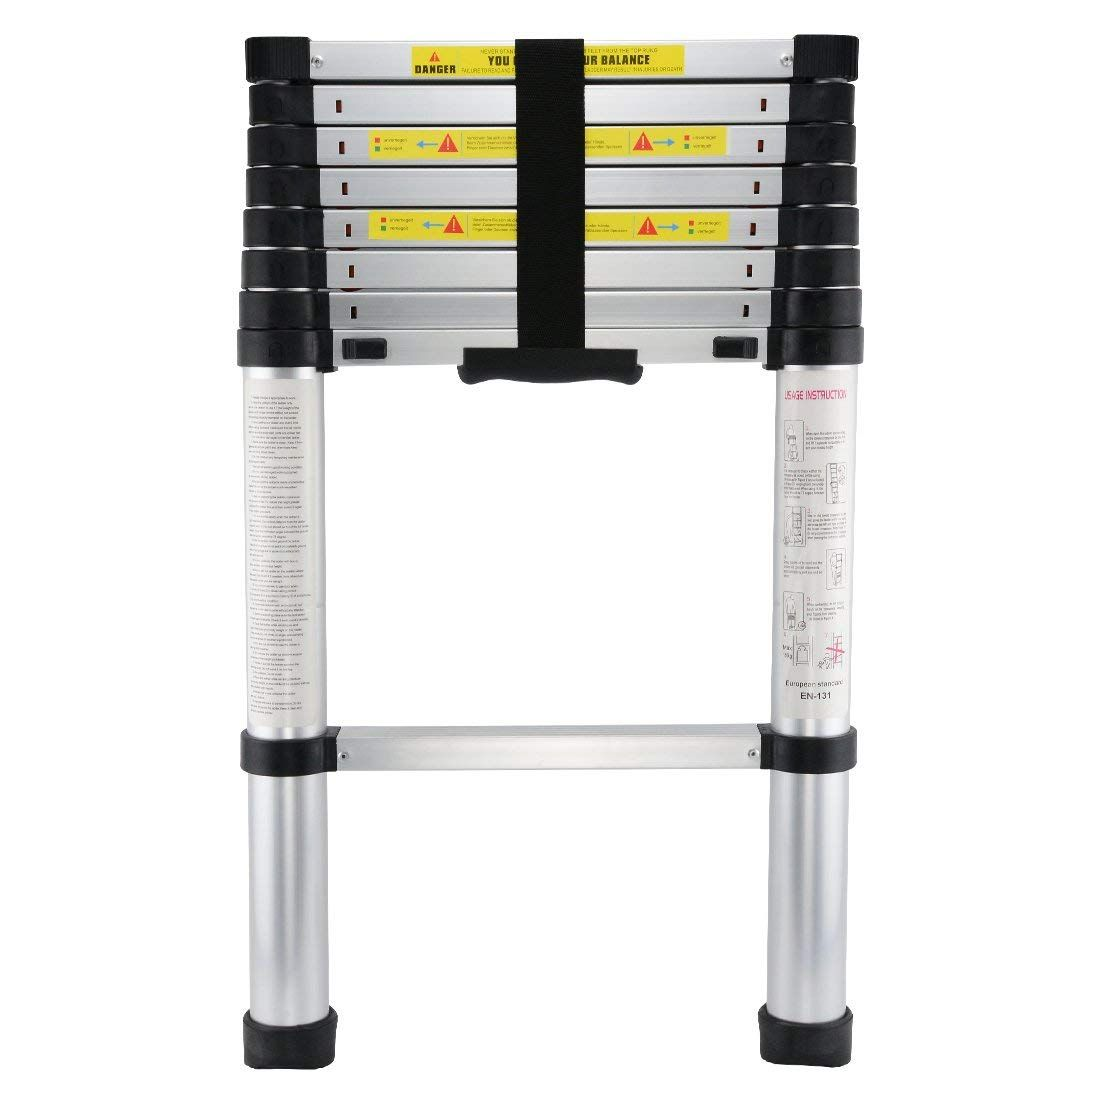 Upgraded 8 5ft Telescopic Extension Ladder With Spring Loaded Locking Mechanism Non Slip 330 Lb Max Check This Awesome Product Ladder Household Emergency